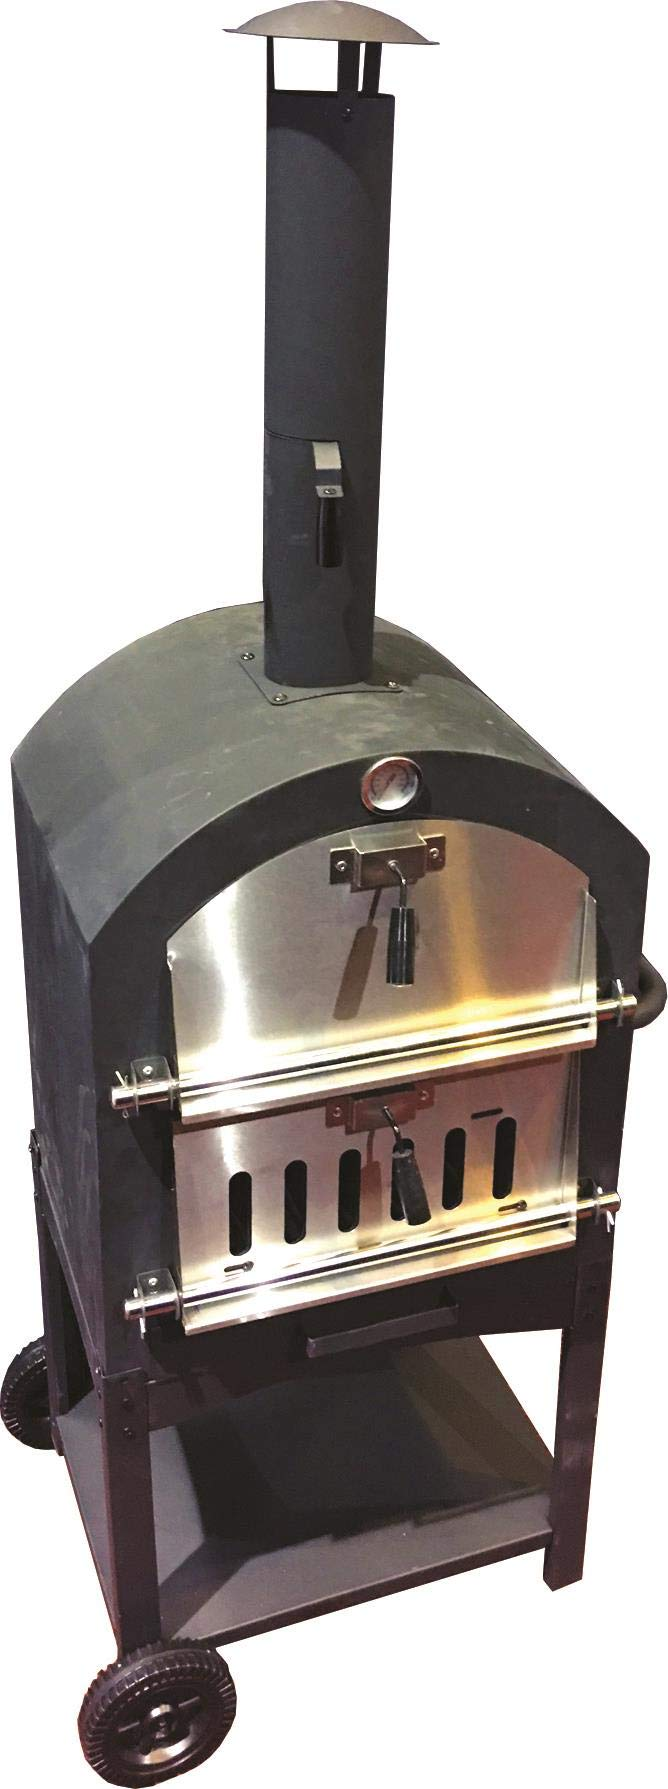 Harbor Gardens KUK002B Monterey Pizza Oven with Stone, Stainless/Enamel Coated Steel by Harbor Gardens